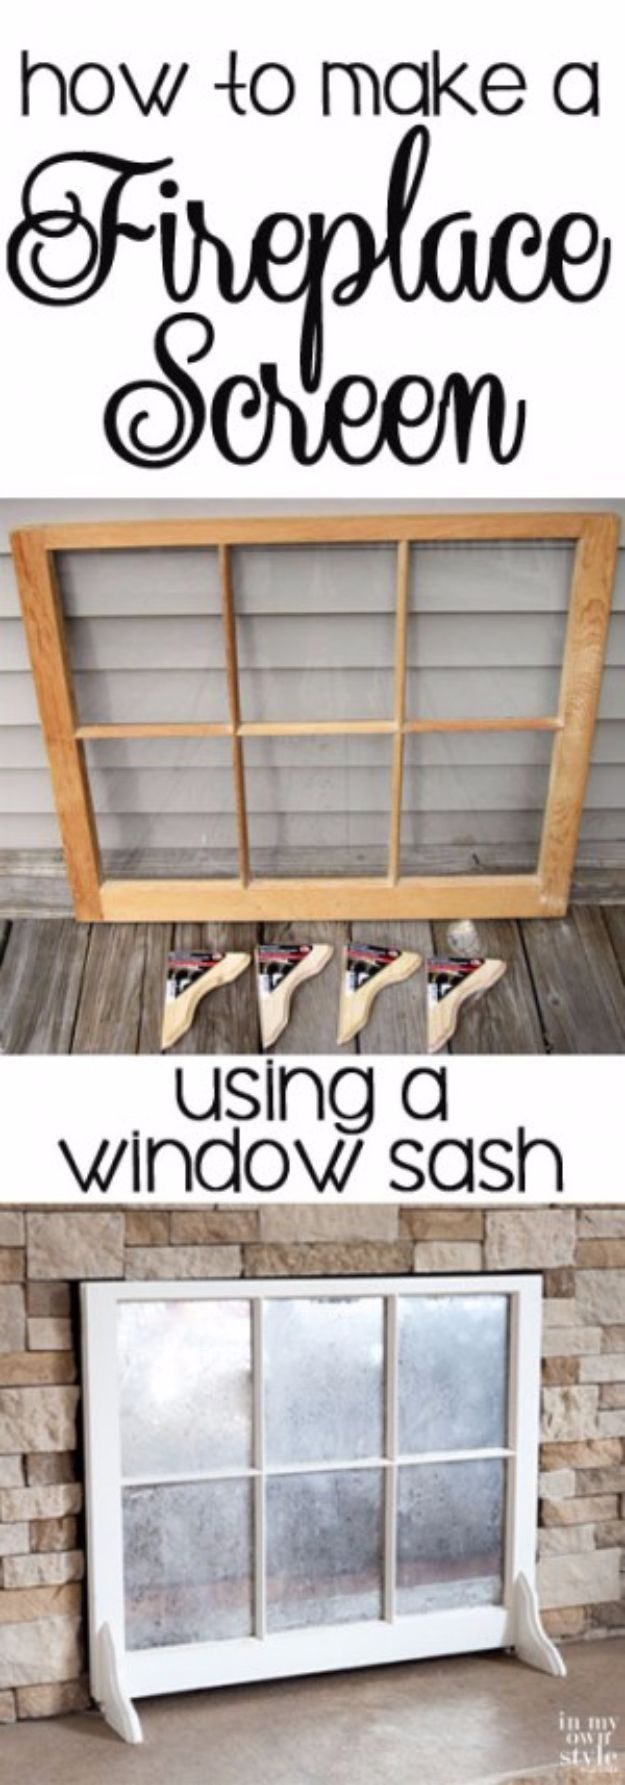 37 Creative Ways To Make Things From Old Windows Interiors Inside Ideas Interiors design about Everything [magnanprojects.com]